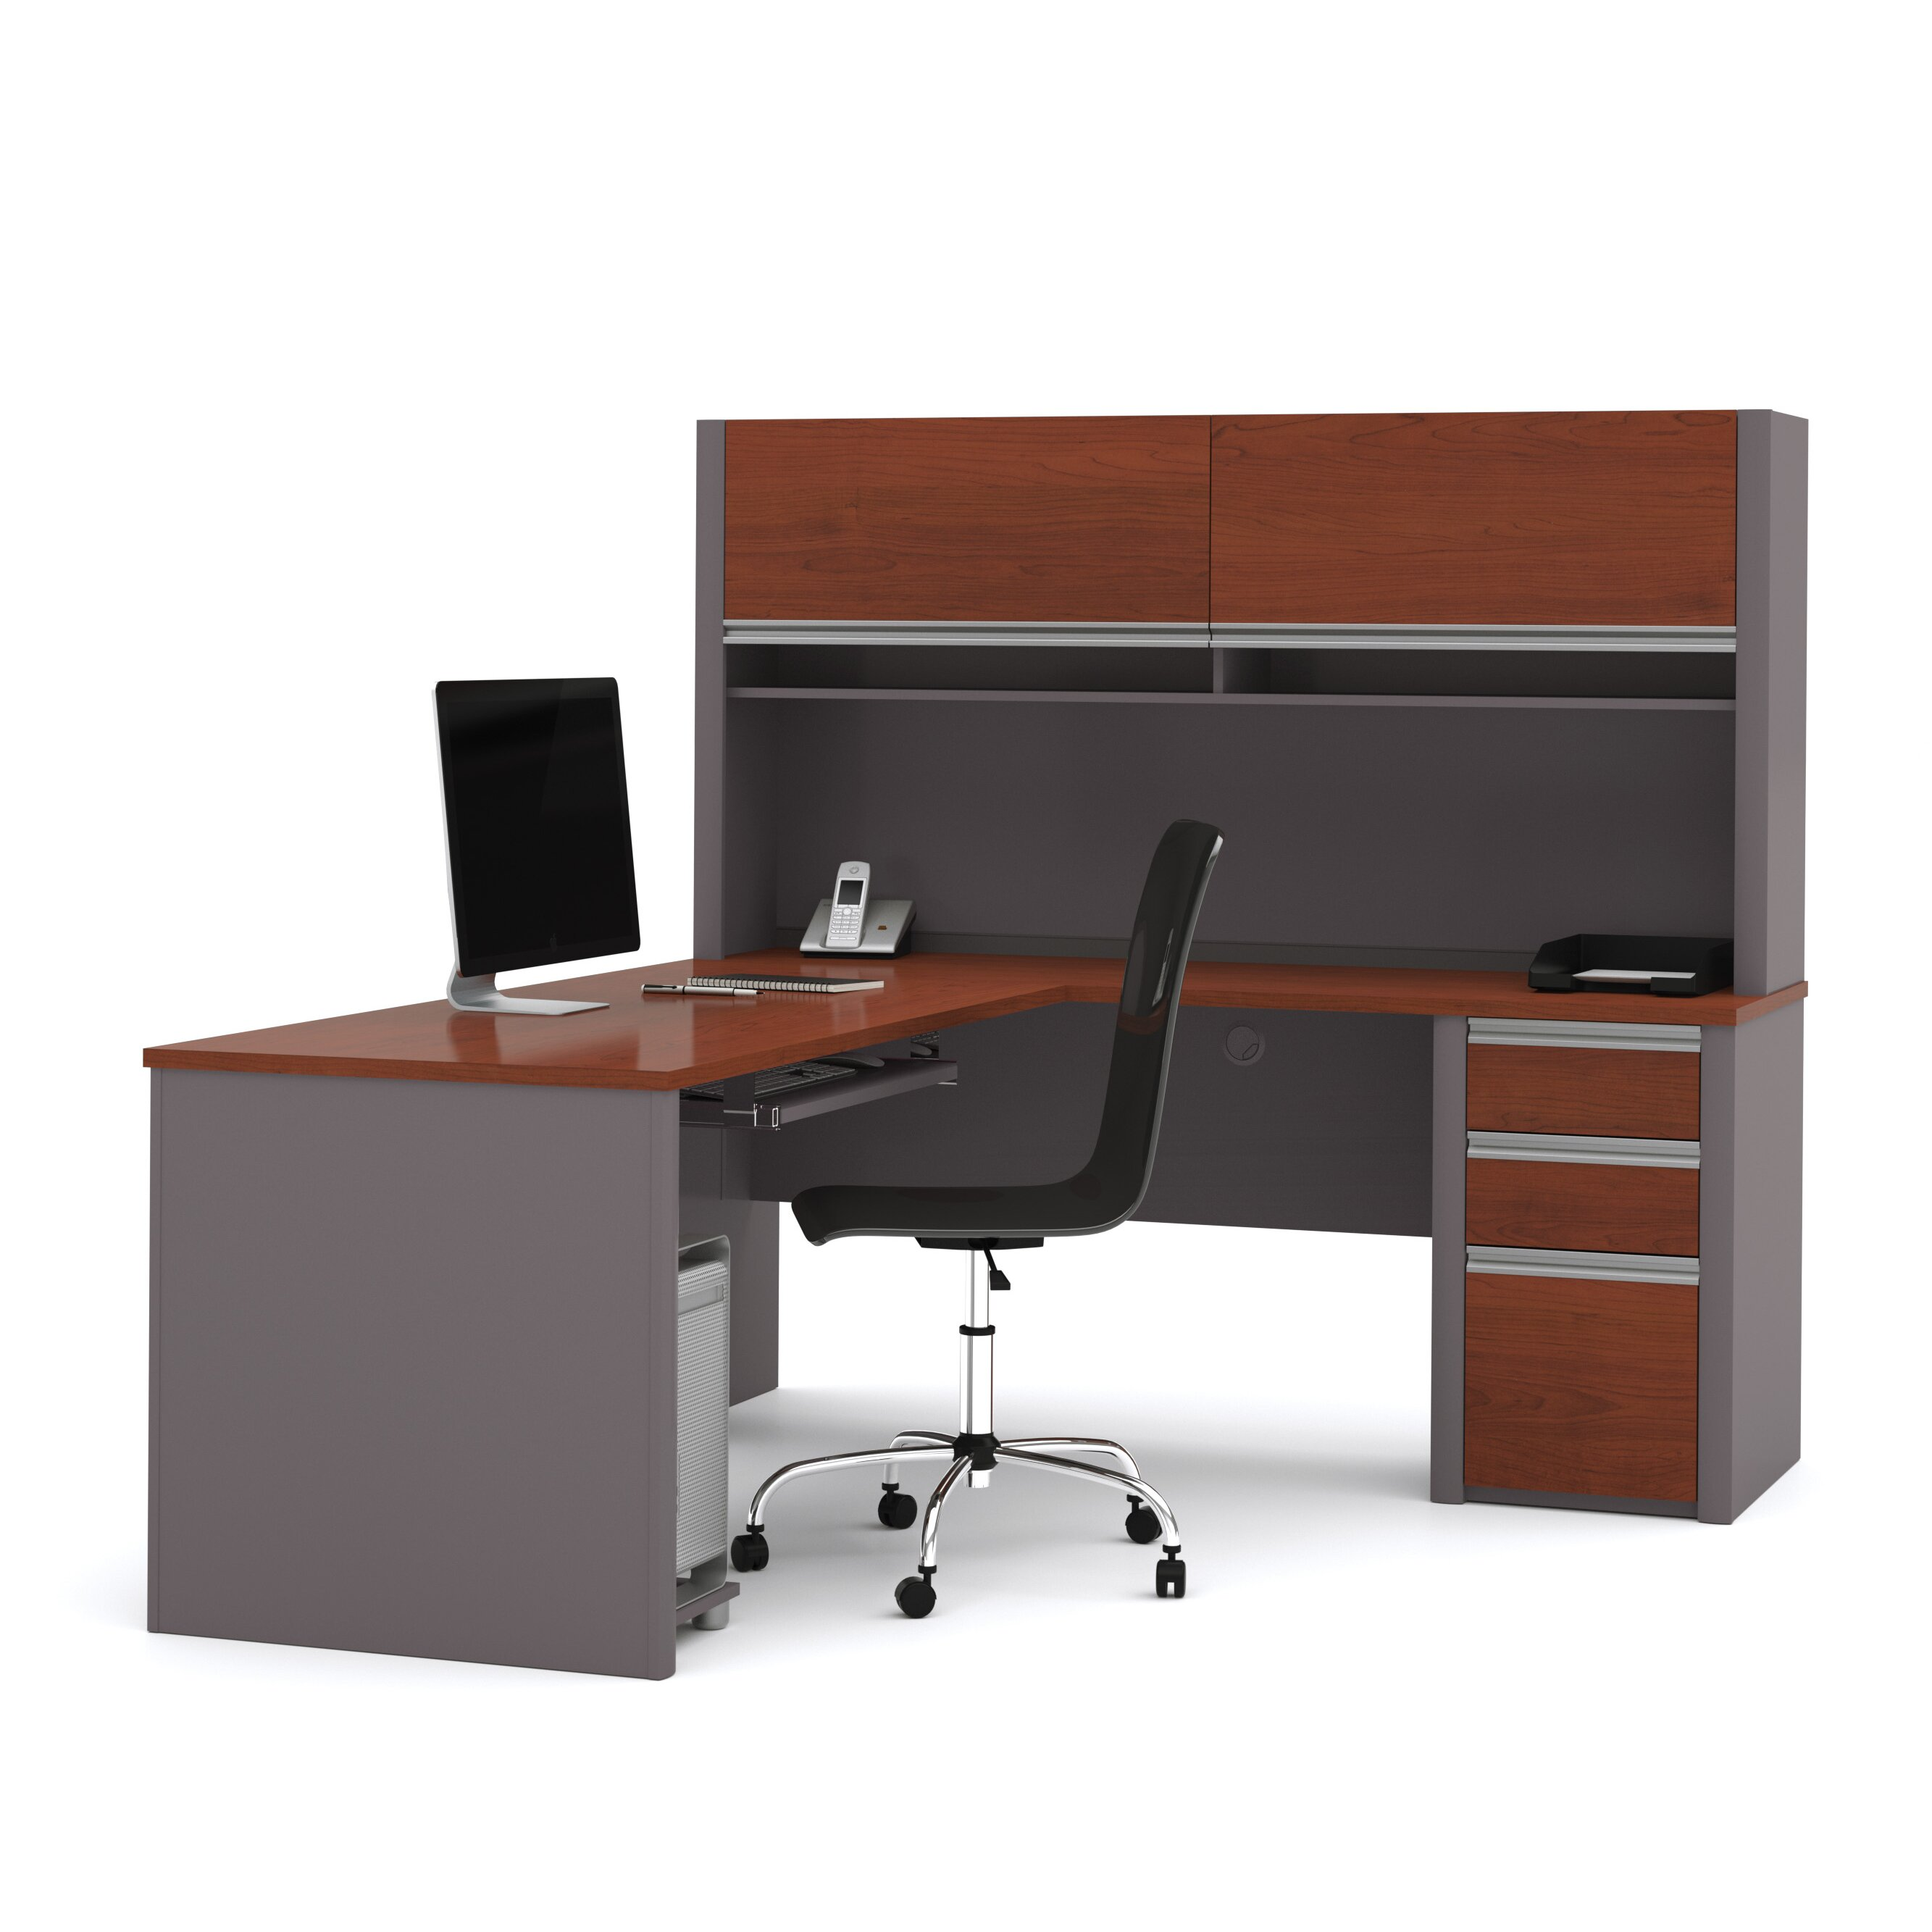 Office max desk with hutch os home office furniture office adaptations computer desk with hutch - Officemax home office furniture ...